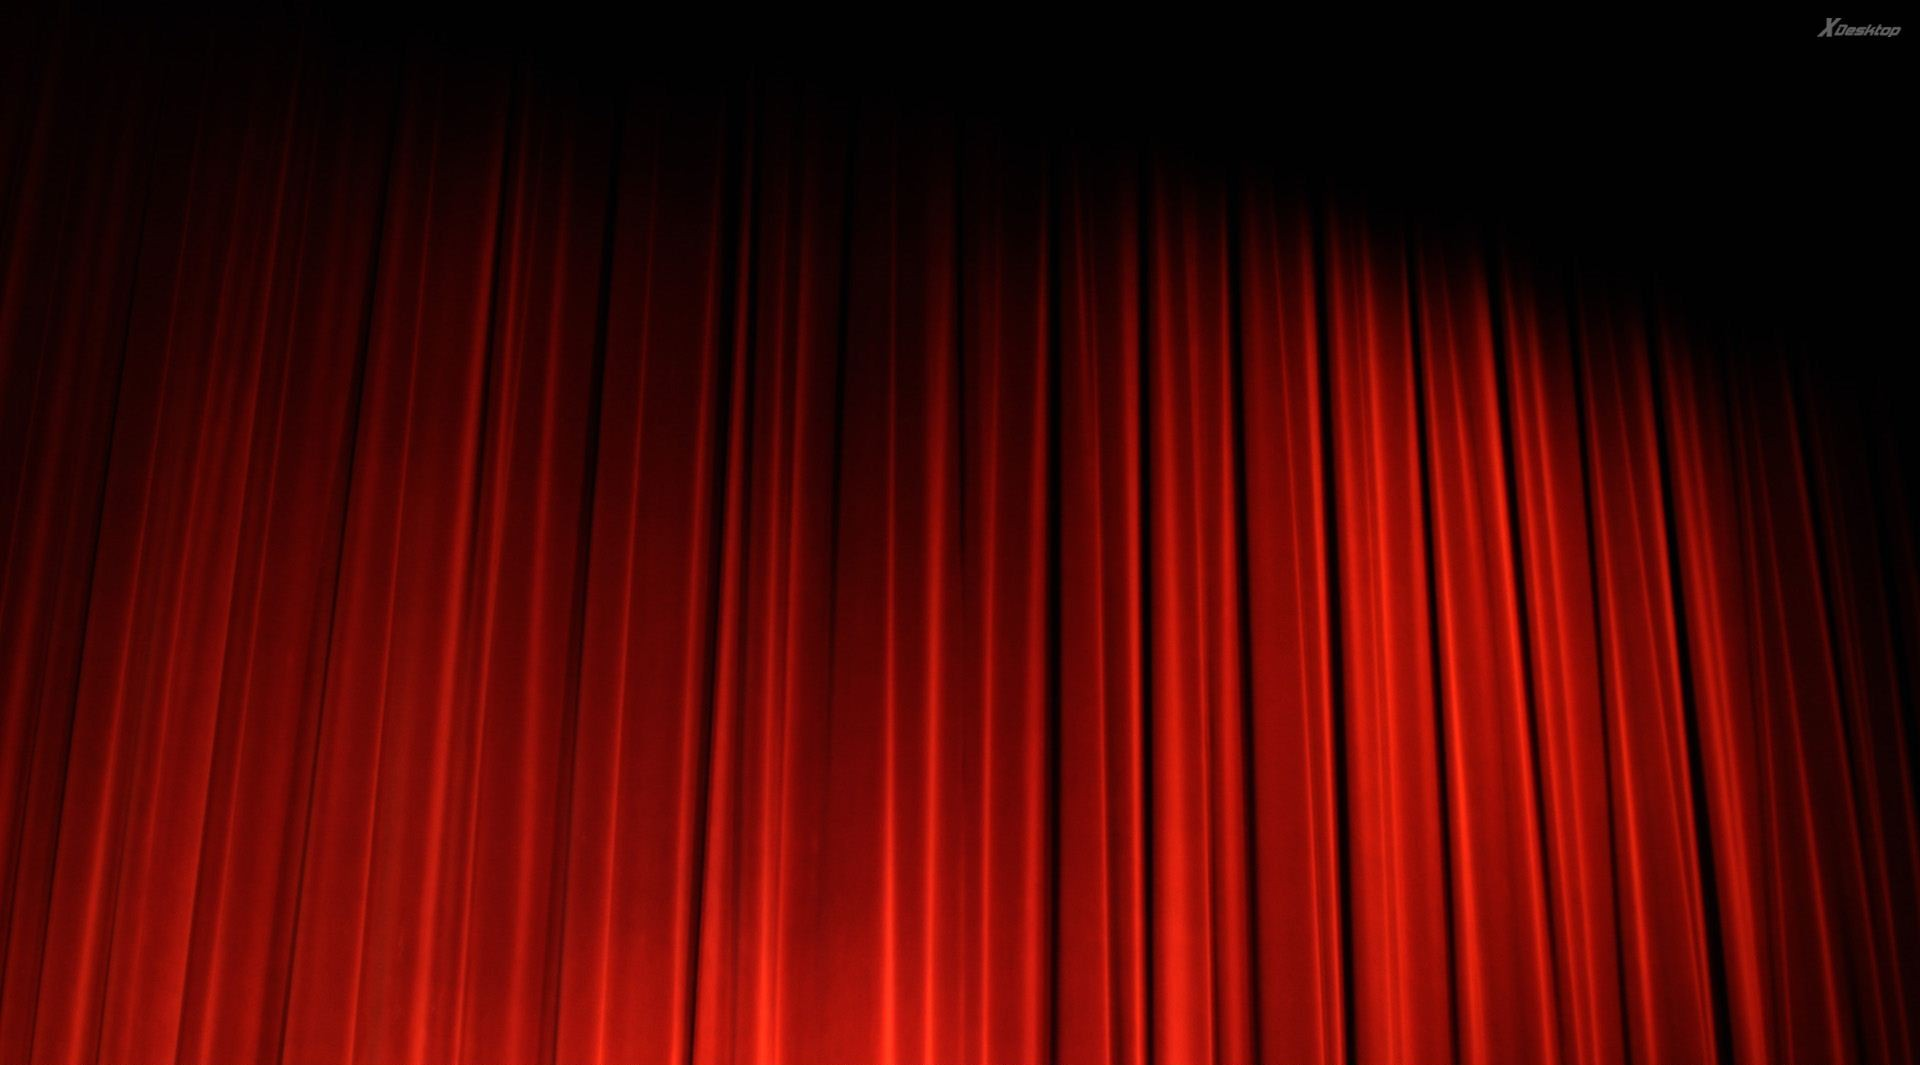 Red-Curtain-In-Cinema-e1410364498226